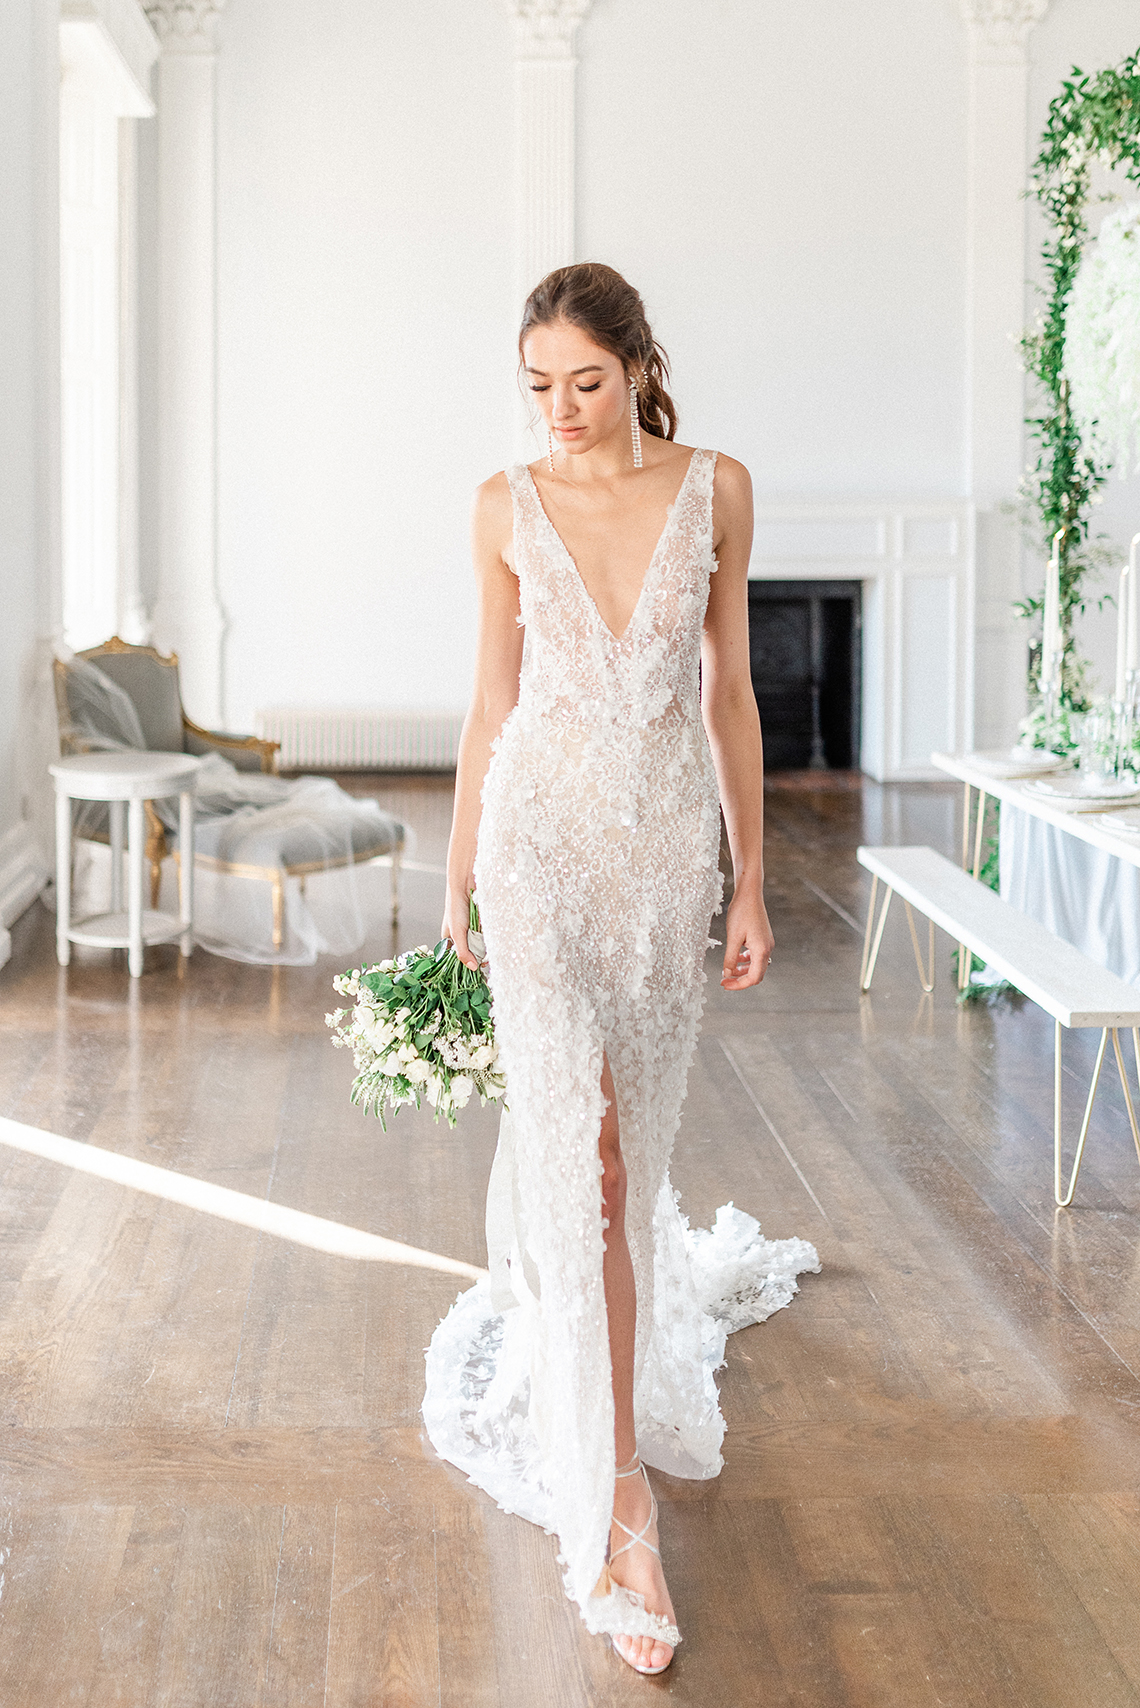 Luxurious and Opulent Wedding Inspiration Featuring Six Stunning Dresses – Gianluca and Mary Adovasio – Tigerlily Weddings 46